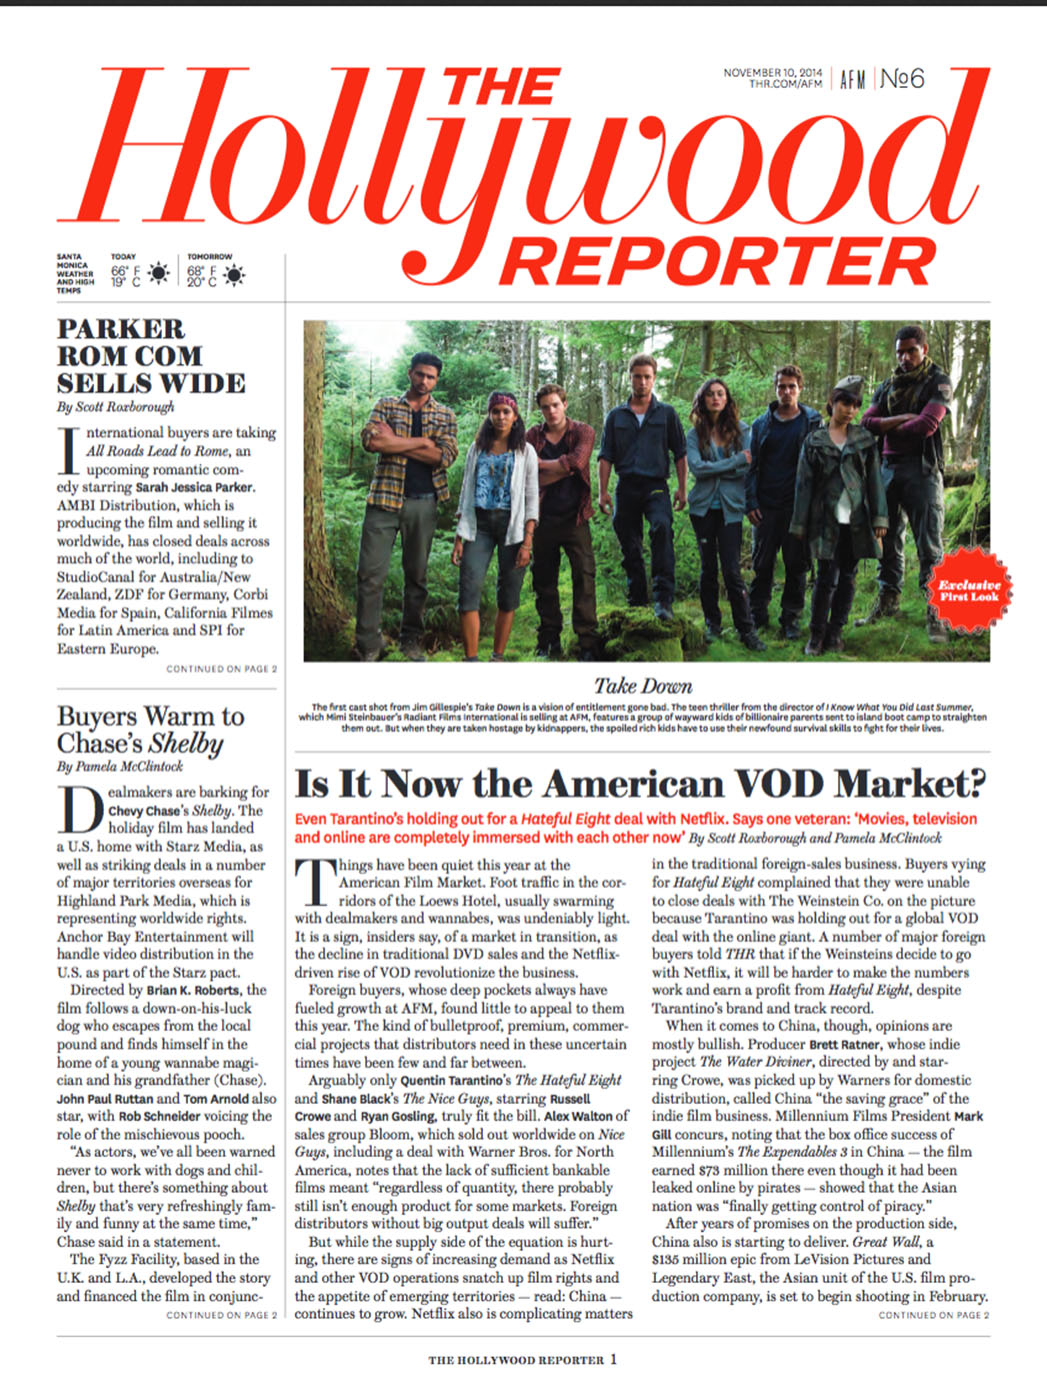 THR AFM day 6 daily - P 2014